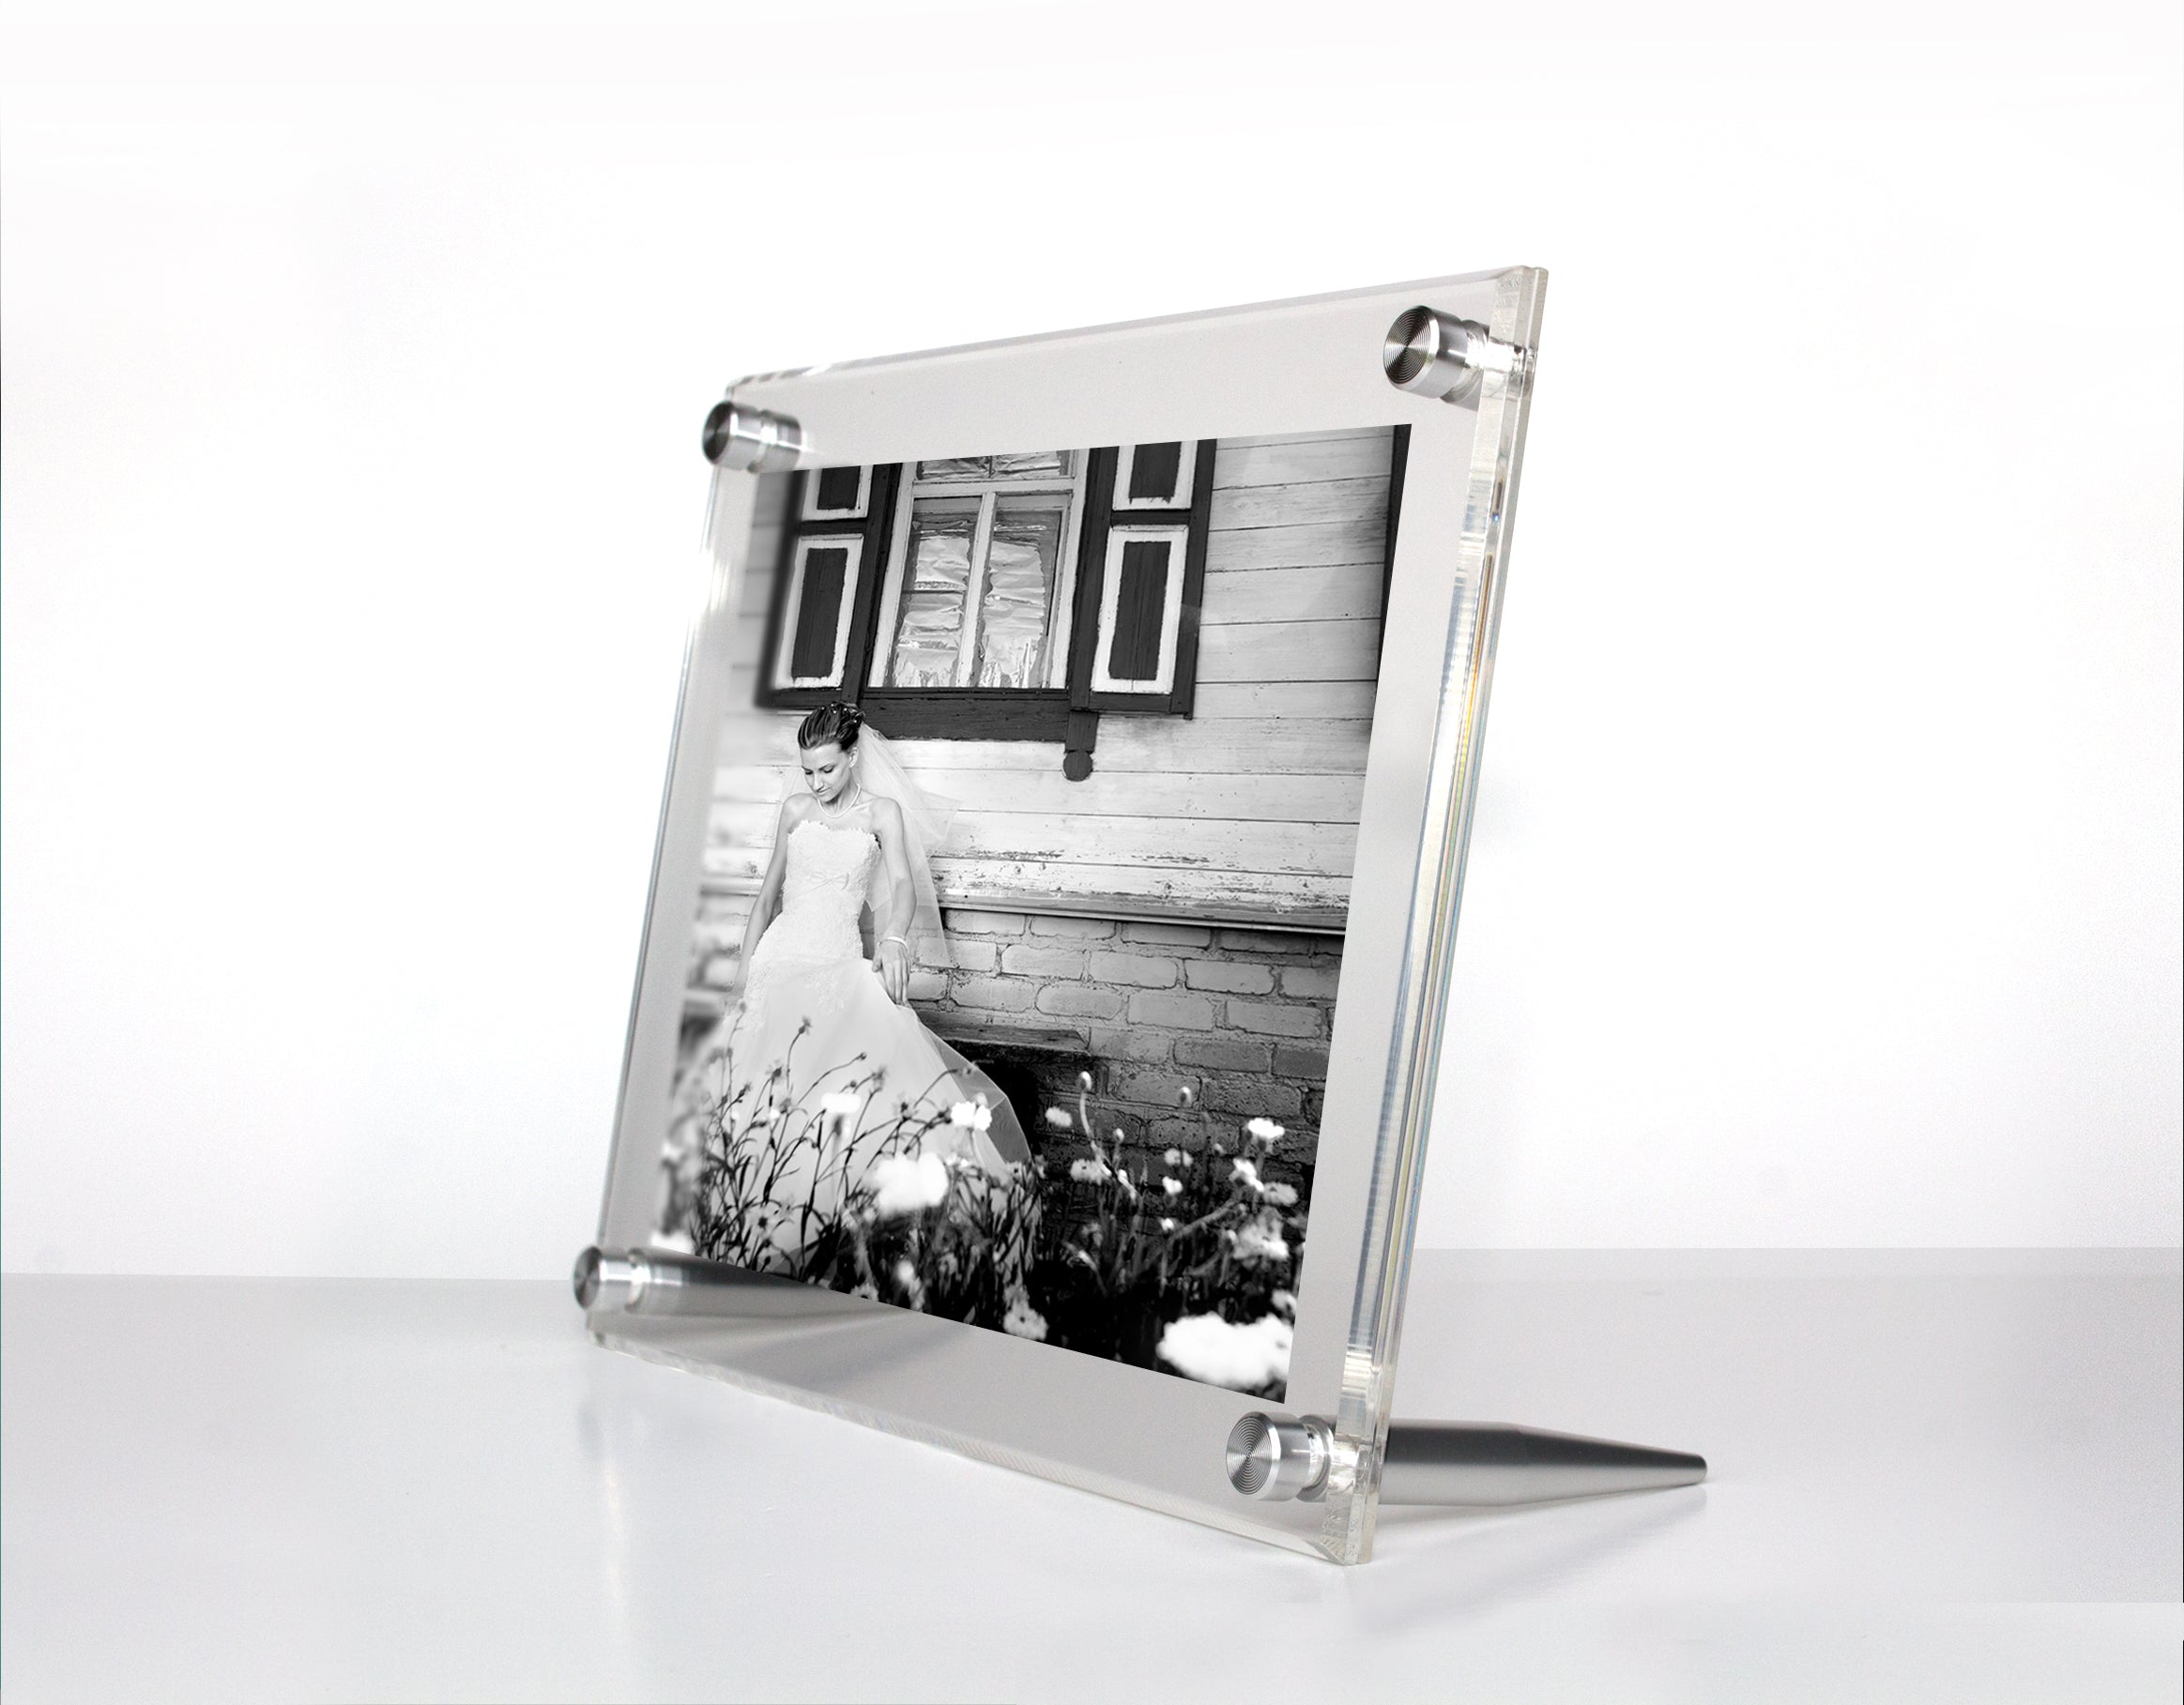 Acrylic Bevel Tabletop Float Frame for 4x6